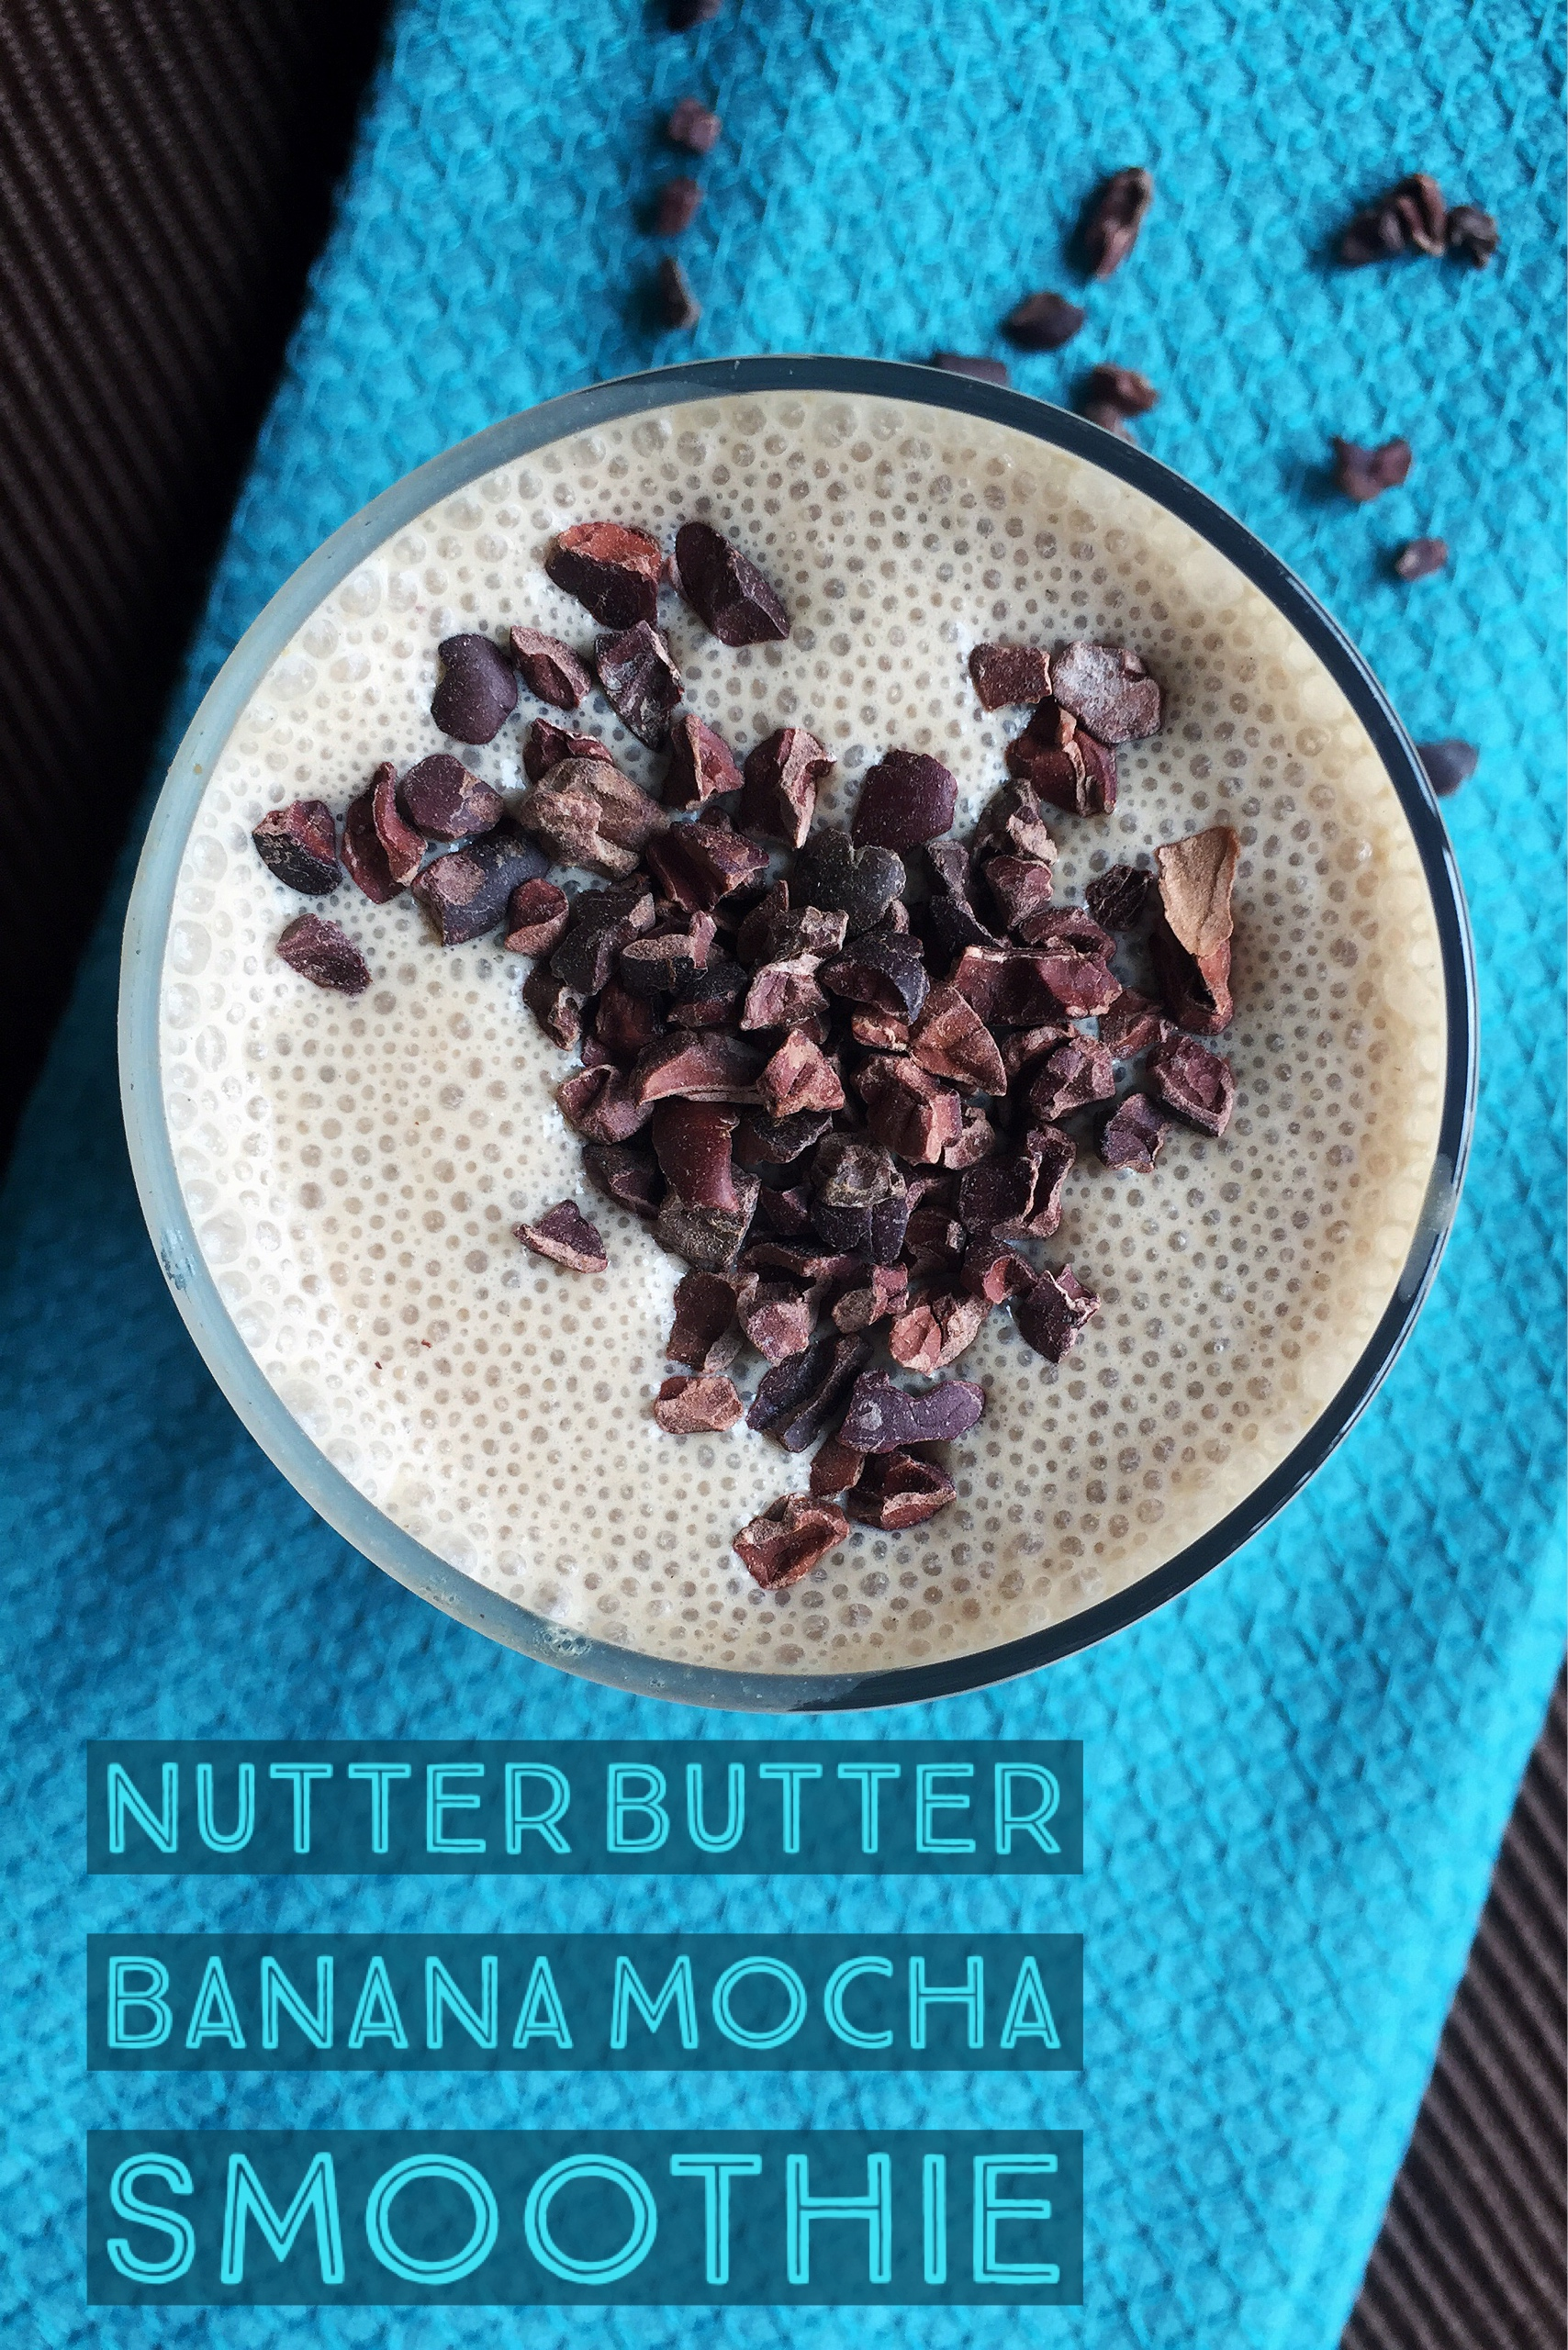 Better For You Mornings With Tasty Peanut Butter And Greek Yogurt Smoothies! © www.roastedbeanz.com #MySmoothie [AD] #CollectiveBias #shop